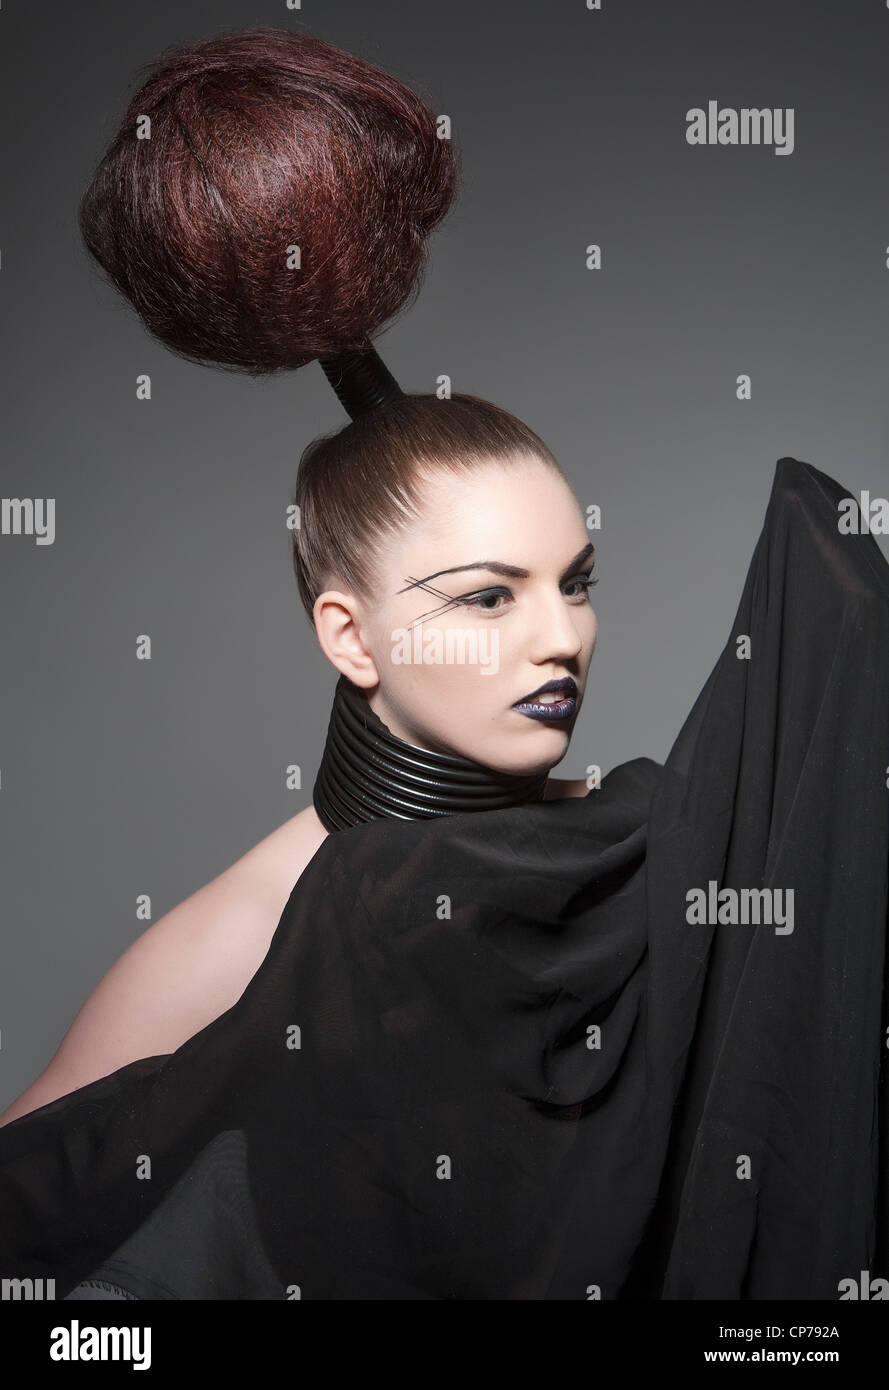 a crazy avant garde hairstyle Stock Photo: 48103954 - Alamy